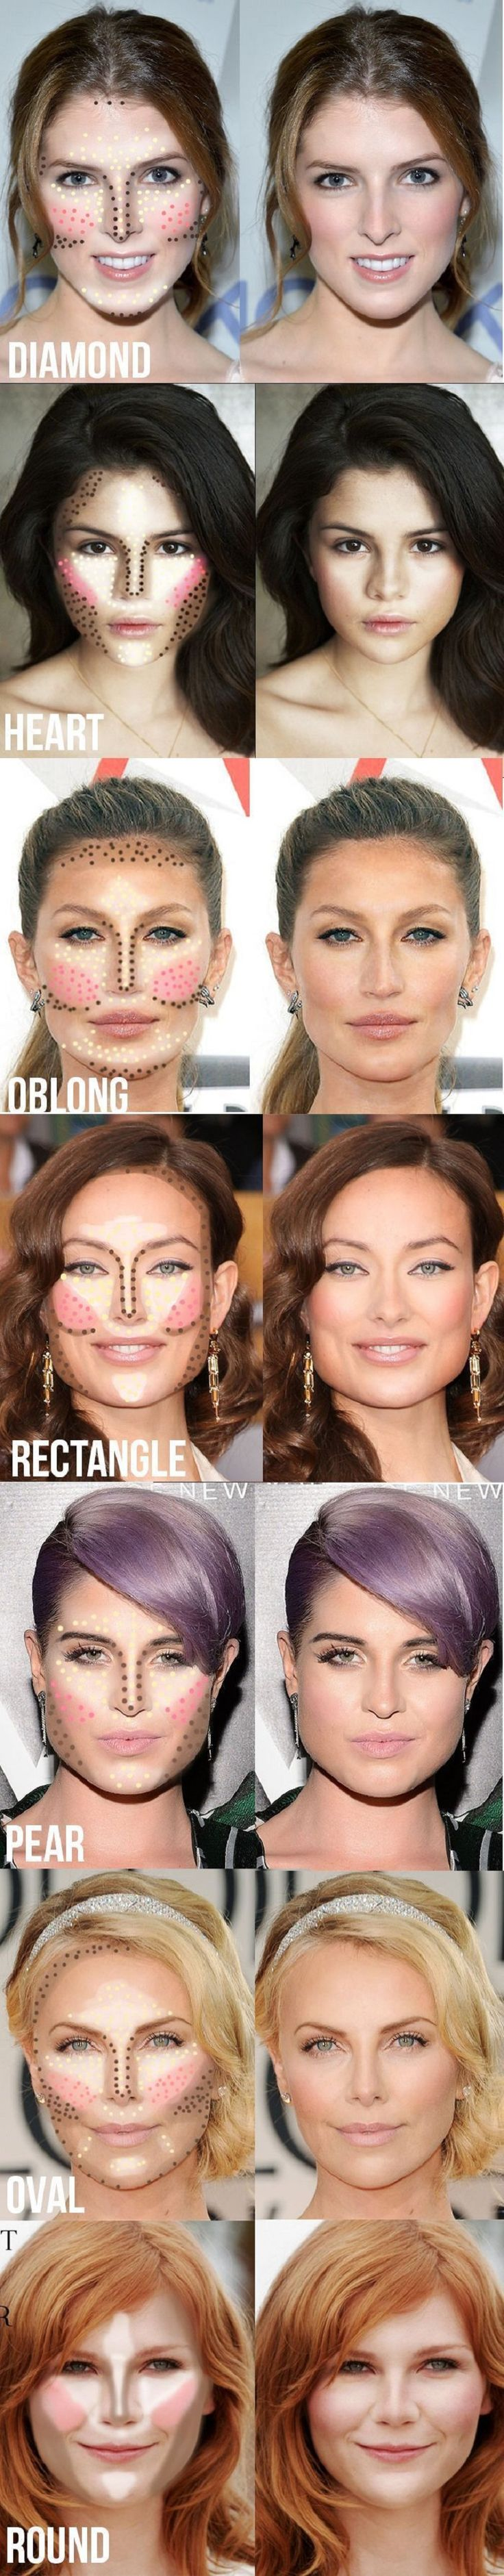 Highlighting and Contouring Quide for Your Face Shape - 12 Best Beauty Tutorials